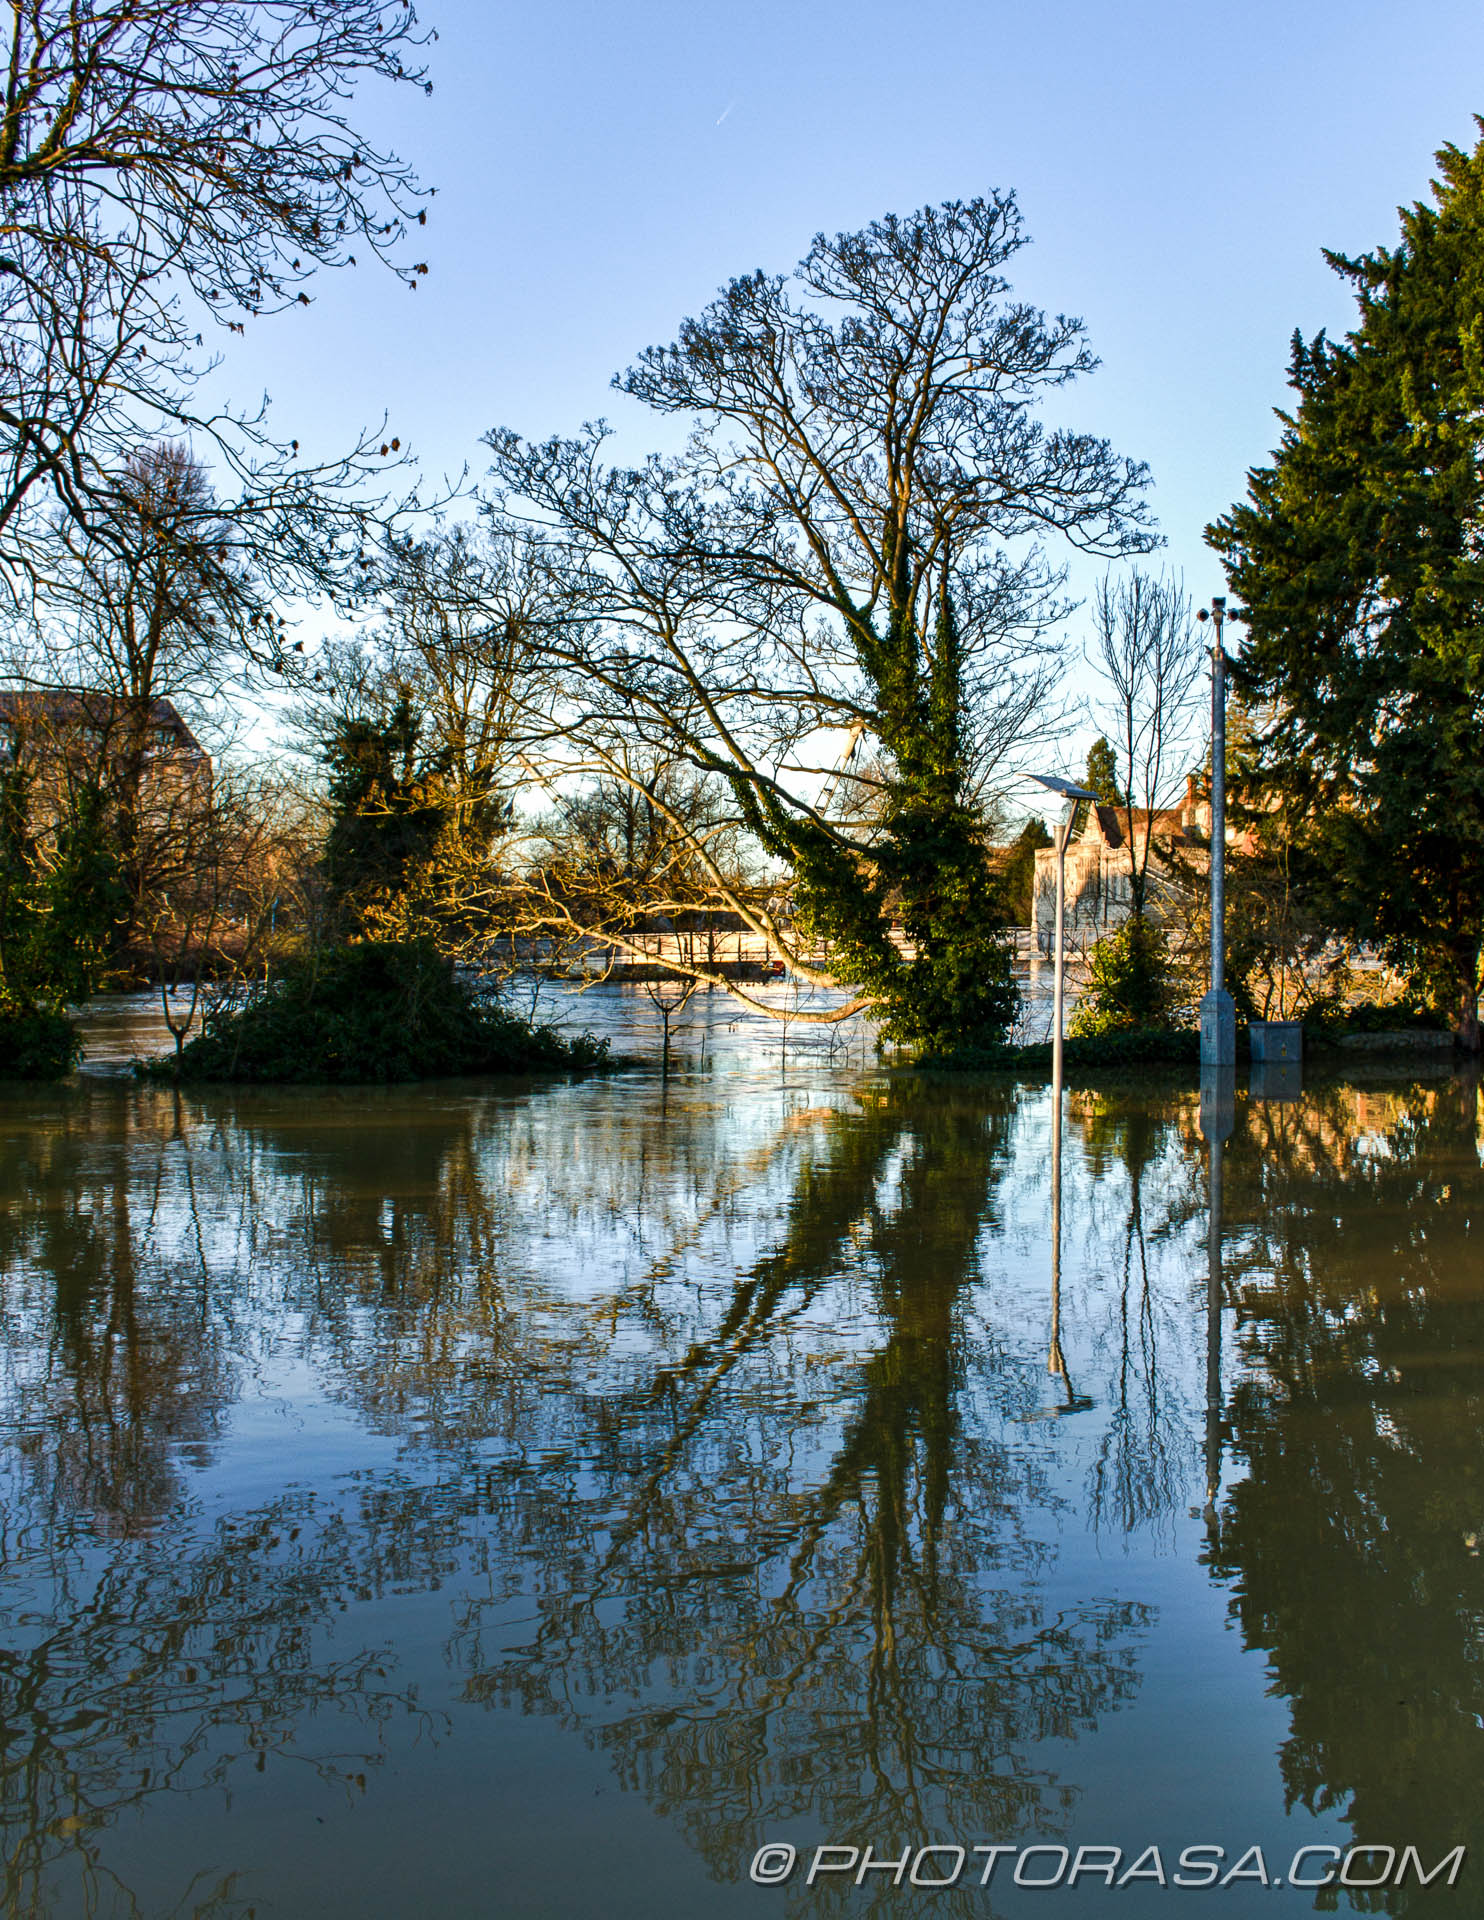 http://photorasa.com/wet-xmas-maidstone-river-medway-floods-town-centre/flooded-ground-and-tree-reflection/